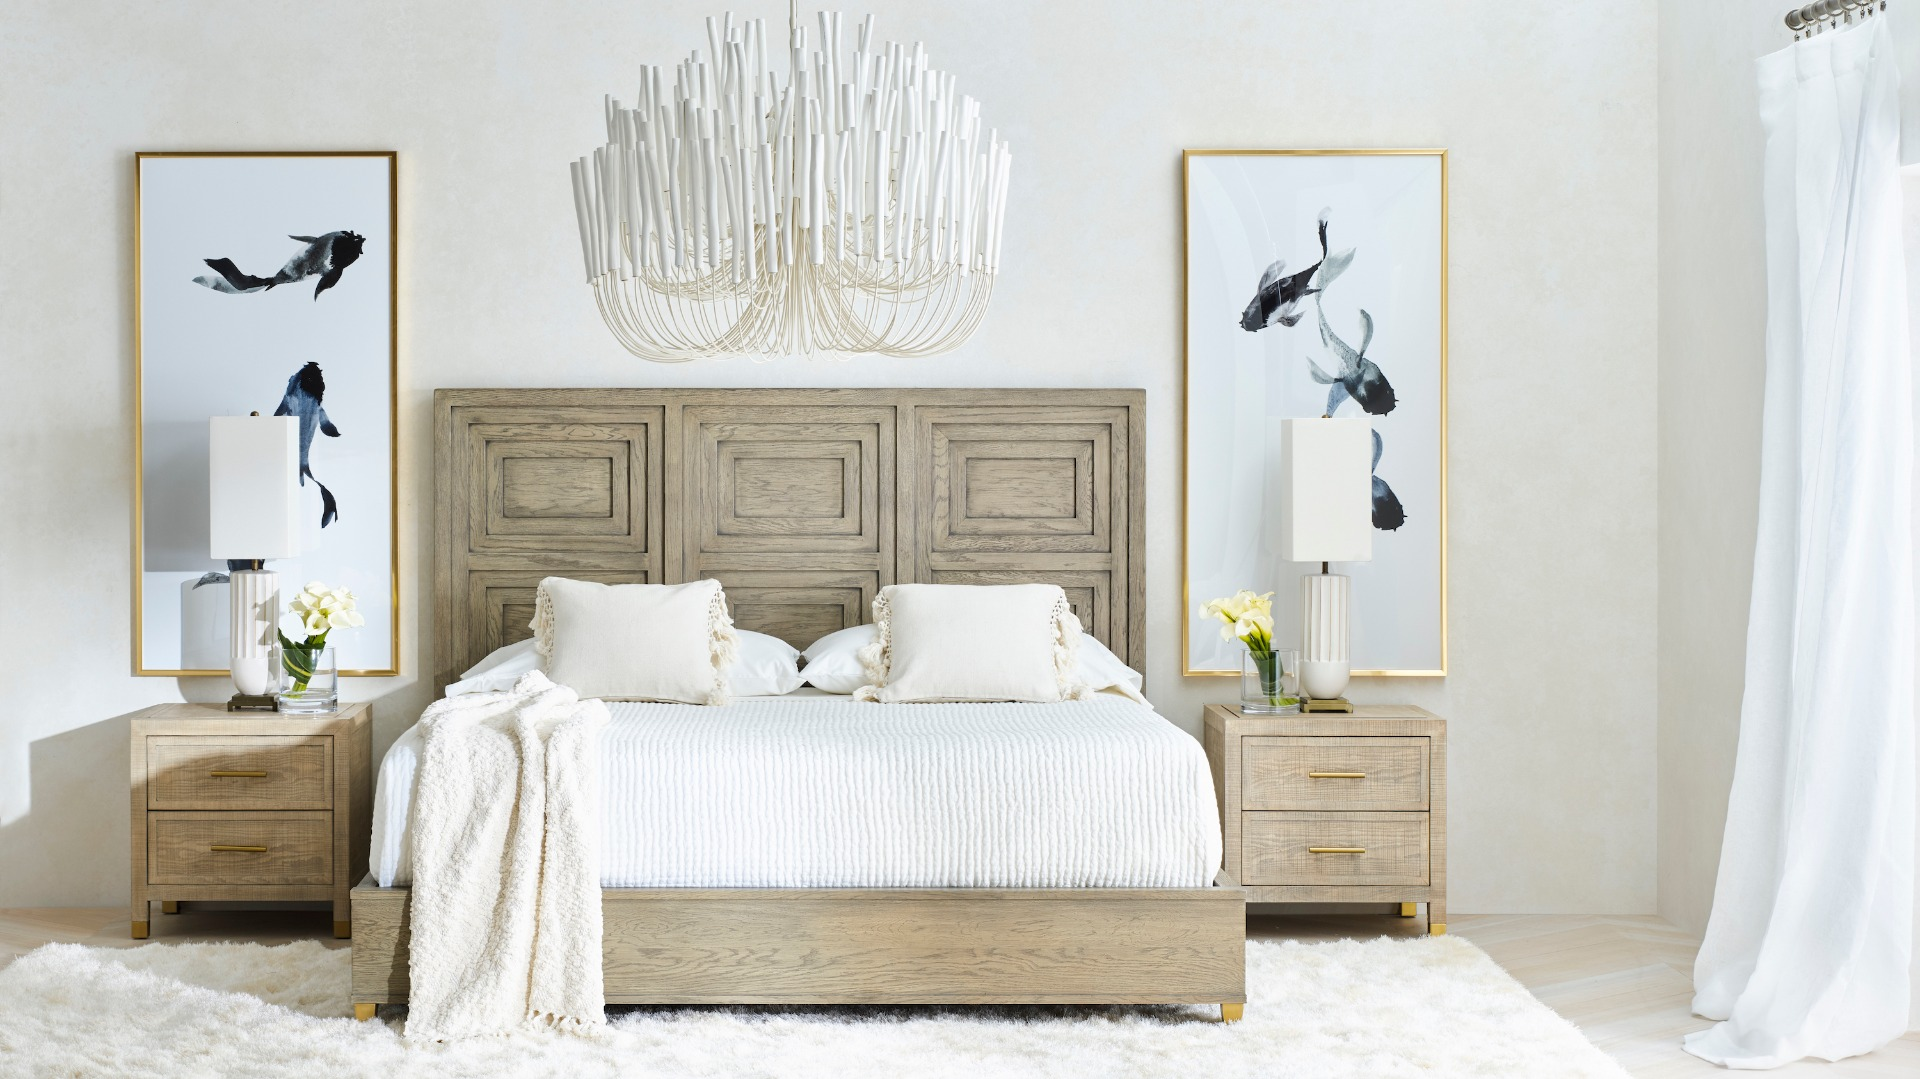 King Size Bedroom Sets: 5 Things to Know Before Buying Luxury